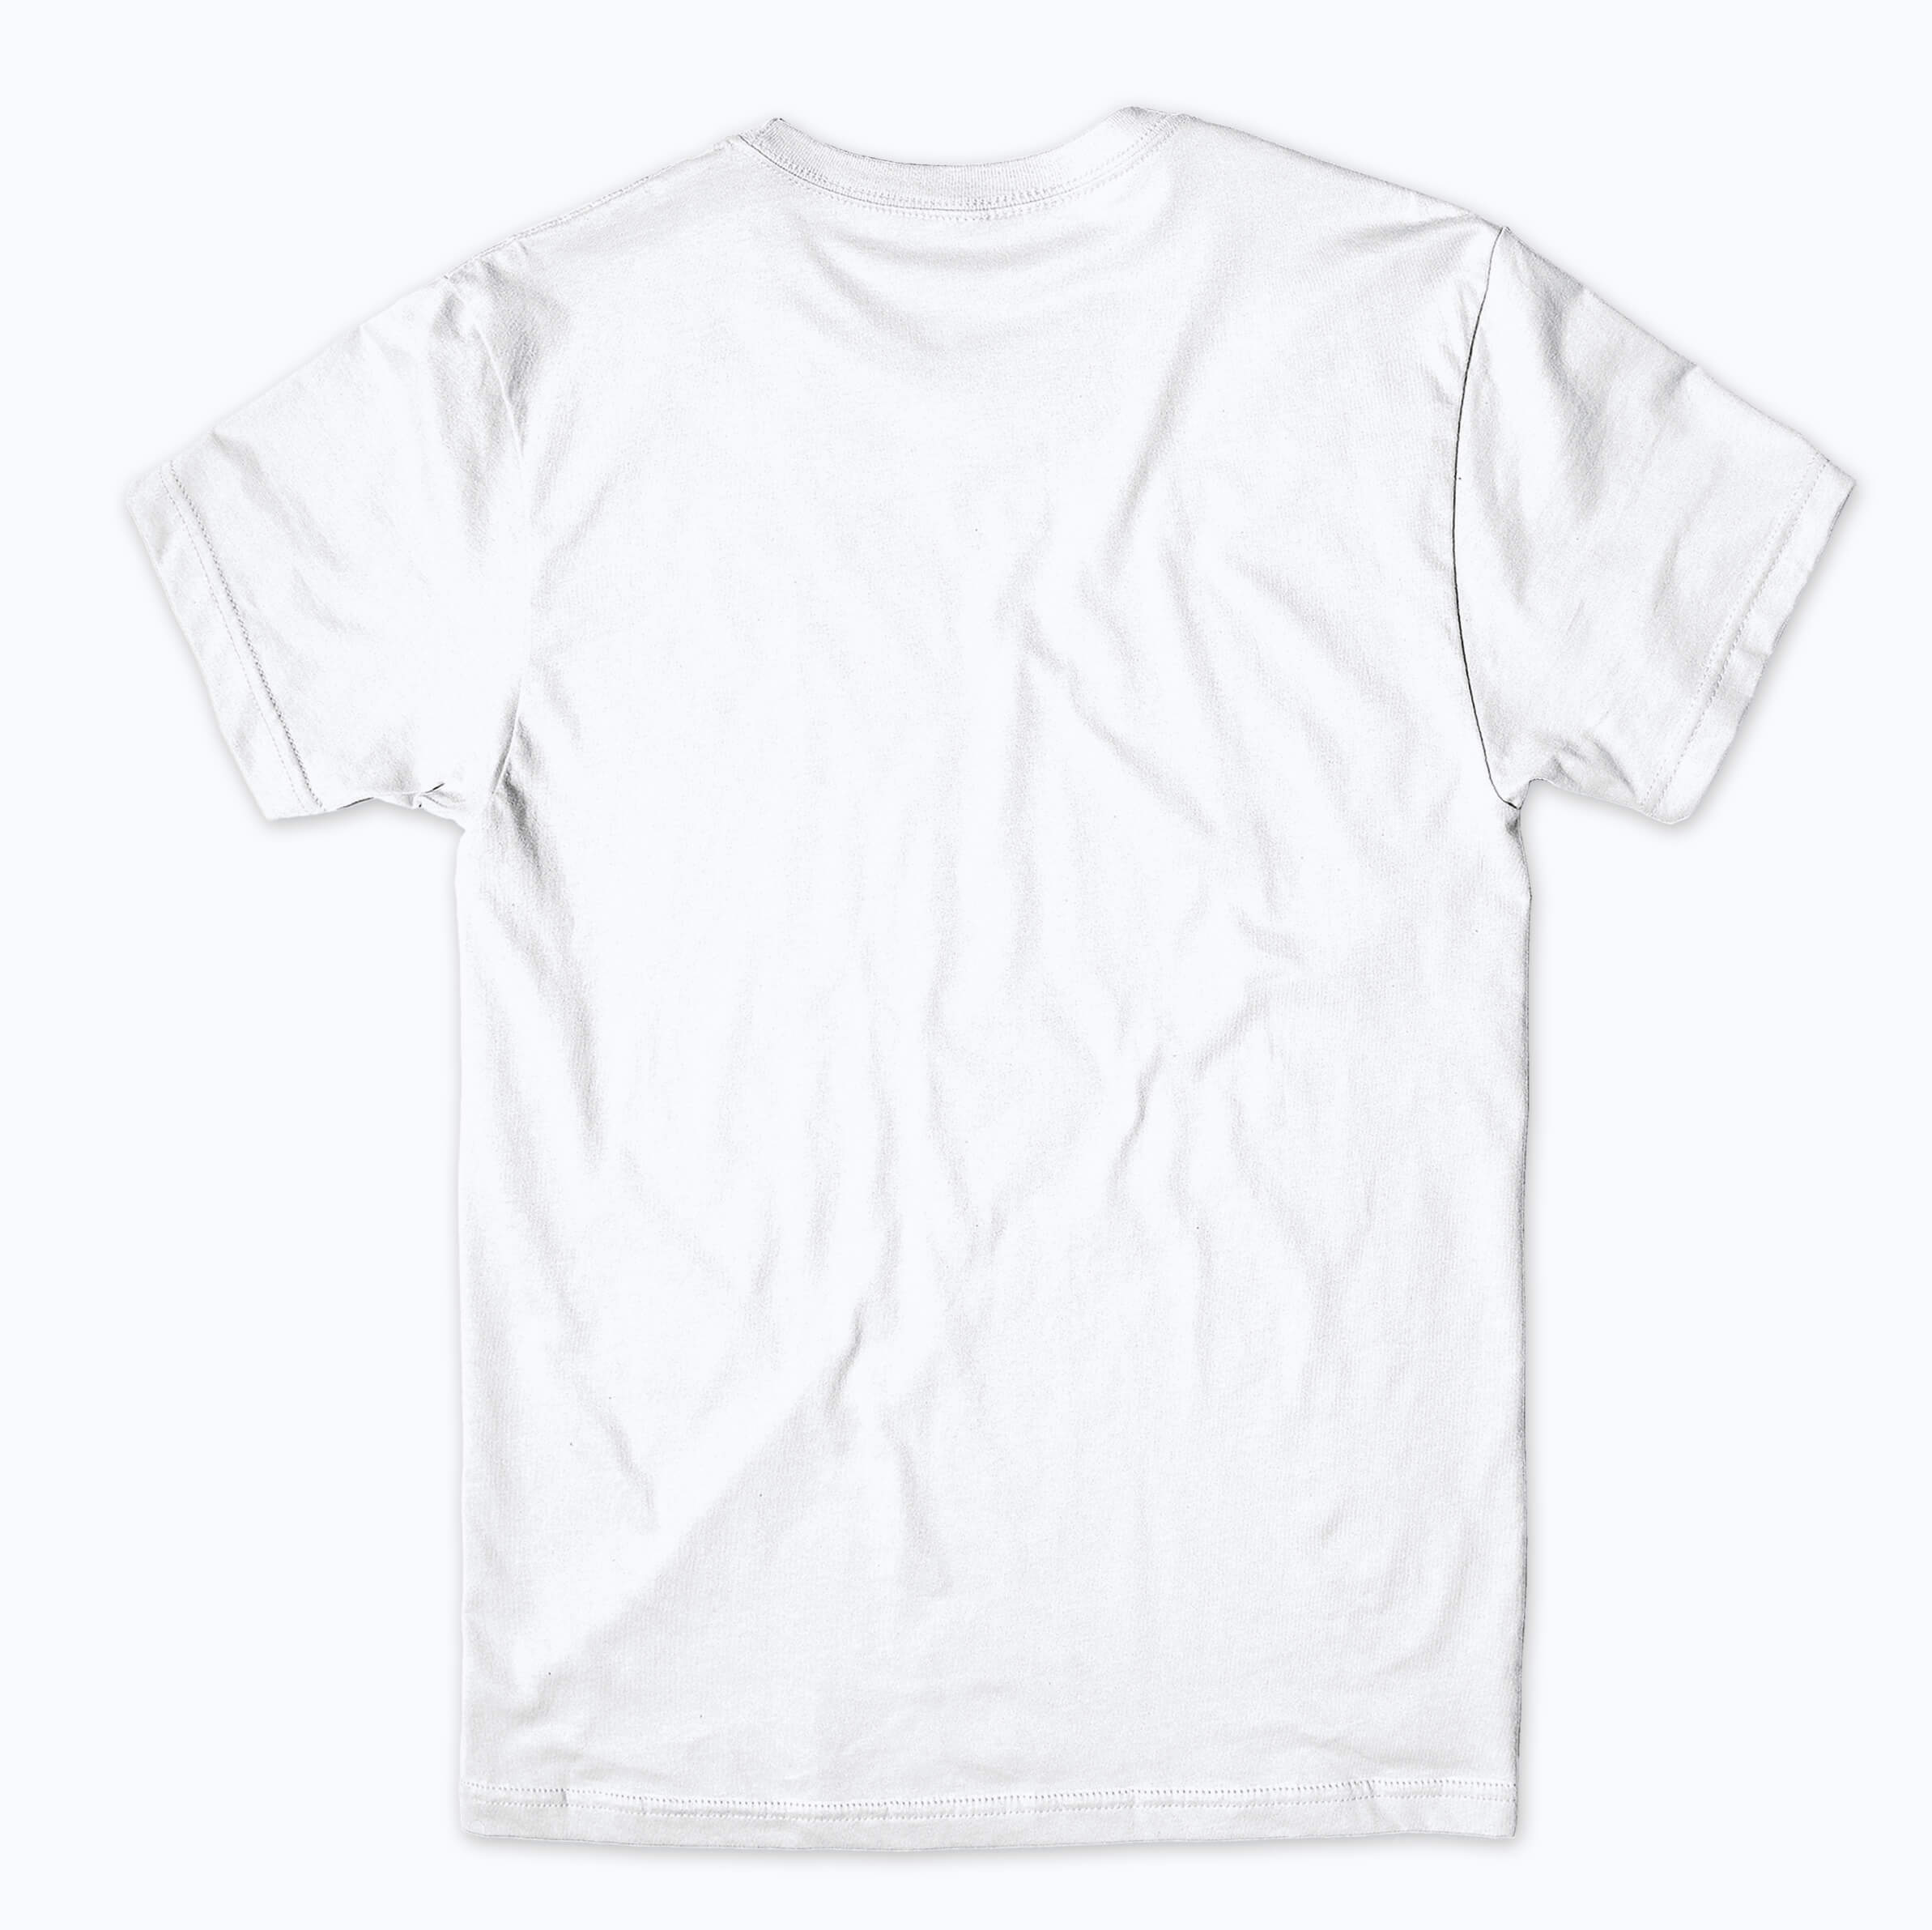 Camiseta Long Beach Cacto Branco